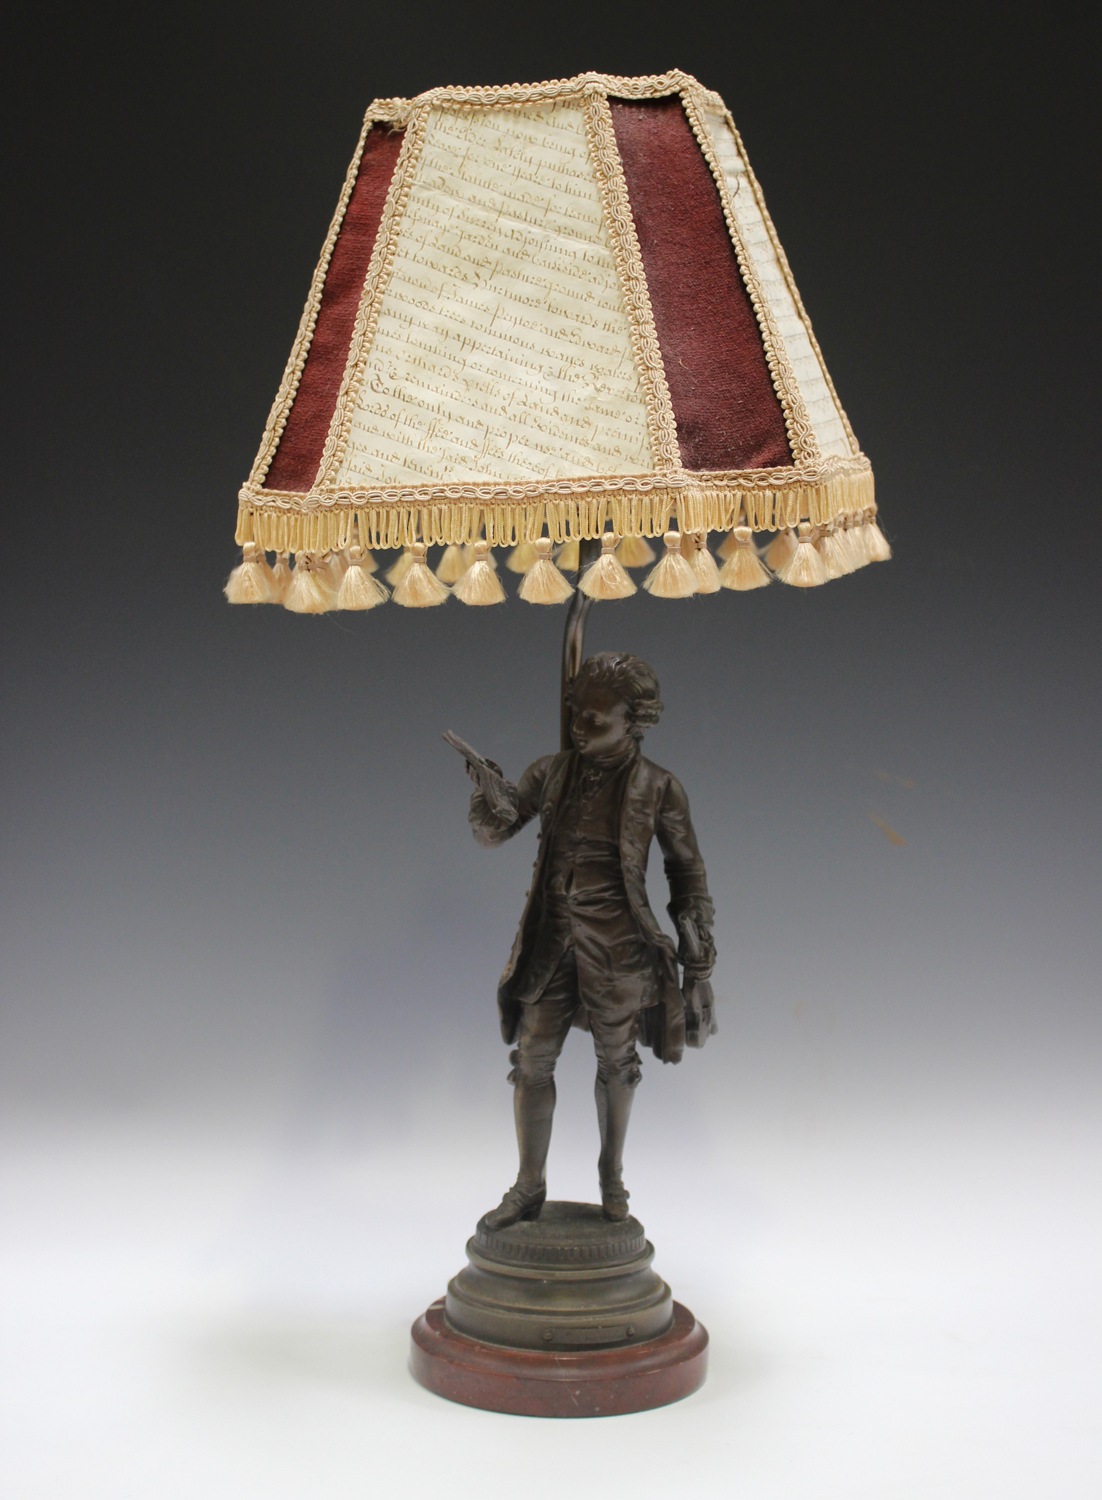 An early 20th century French cast spelter figural table lamp, modelled after Emile Bruchon as the